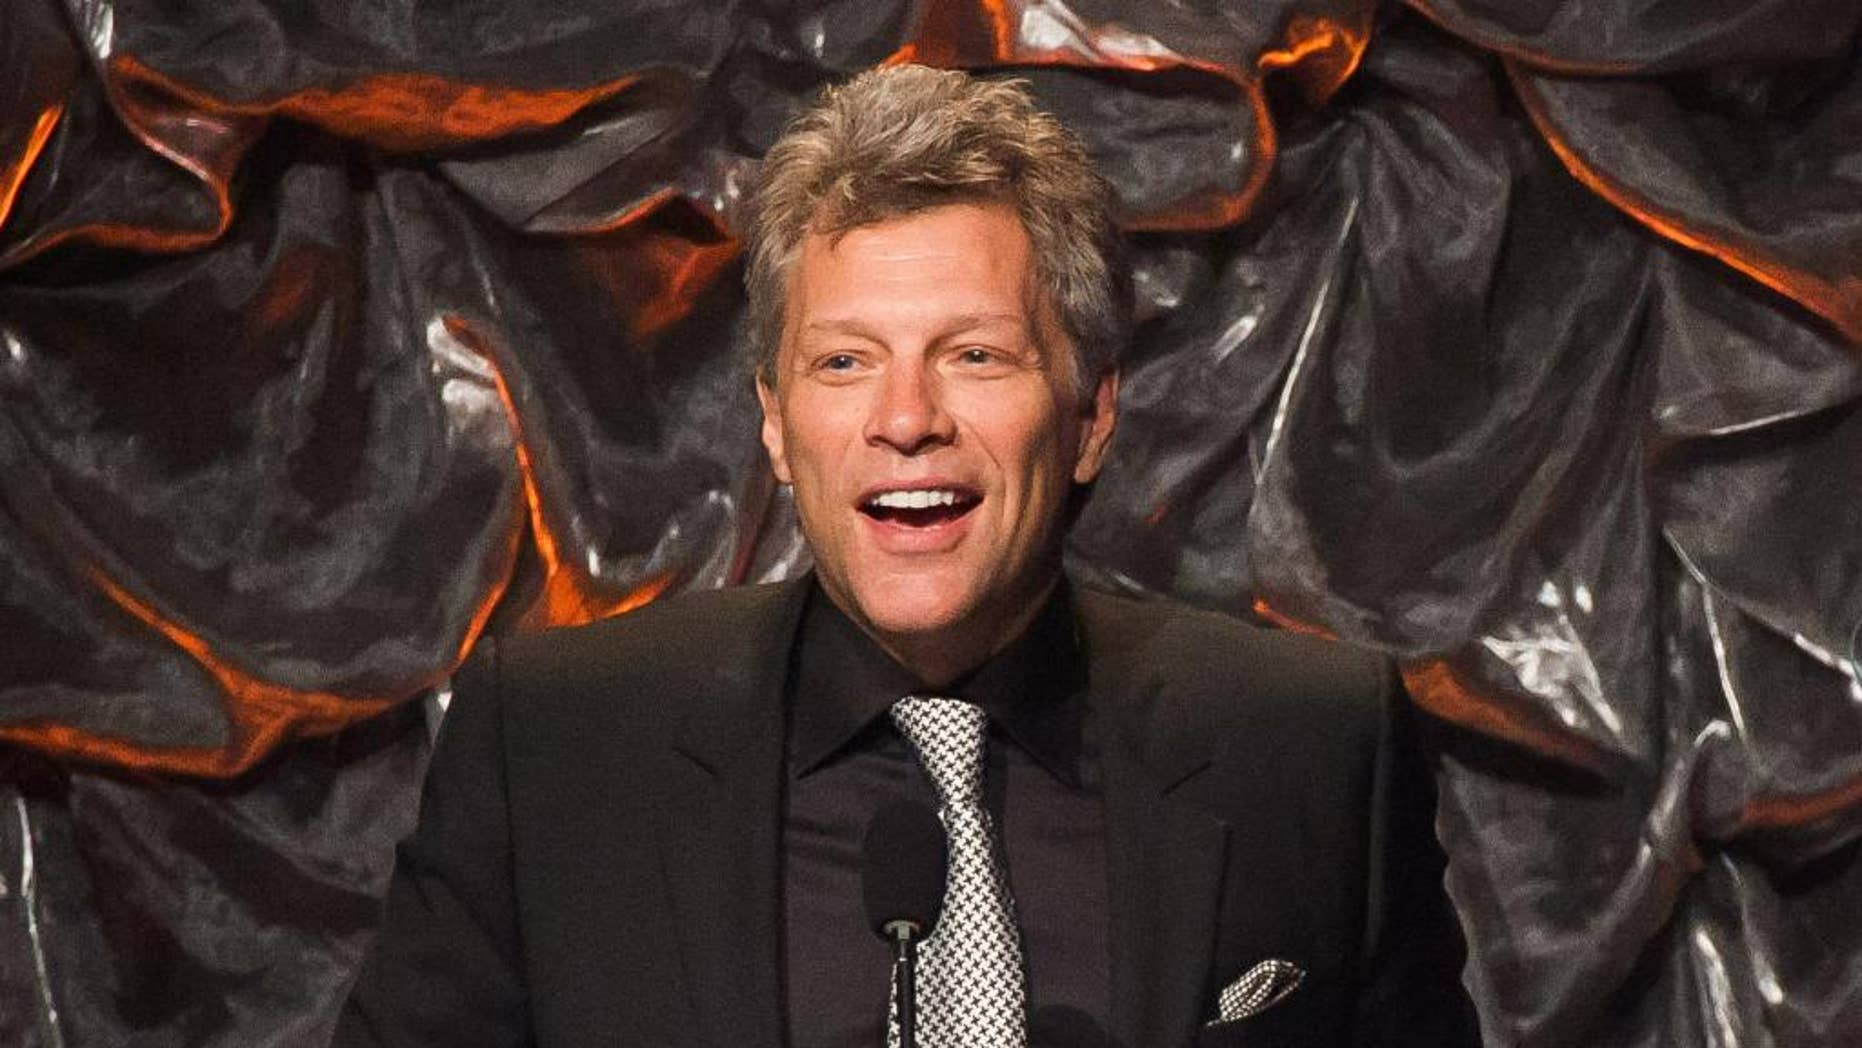 """FILE - In this June 12, 2014 file photo, Jon Bon Jovi attends the Songwriters Hall of Fame Awards in New York.  Promoters of Bon Jovi's upcoming shows in Asia said they are being canceled for """"unforeseen reasons."""" AEG Live Asia said in a statement Tuesday, Sept. 8, 2015 that refunds will be offered for shows scheduled for Sept. 14 in Shanghai and Sept. 17 in Beijing.(Photo by Charles Sykes/Invision/AP, File)"""